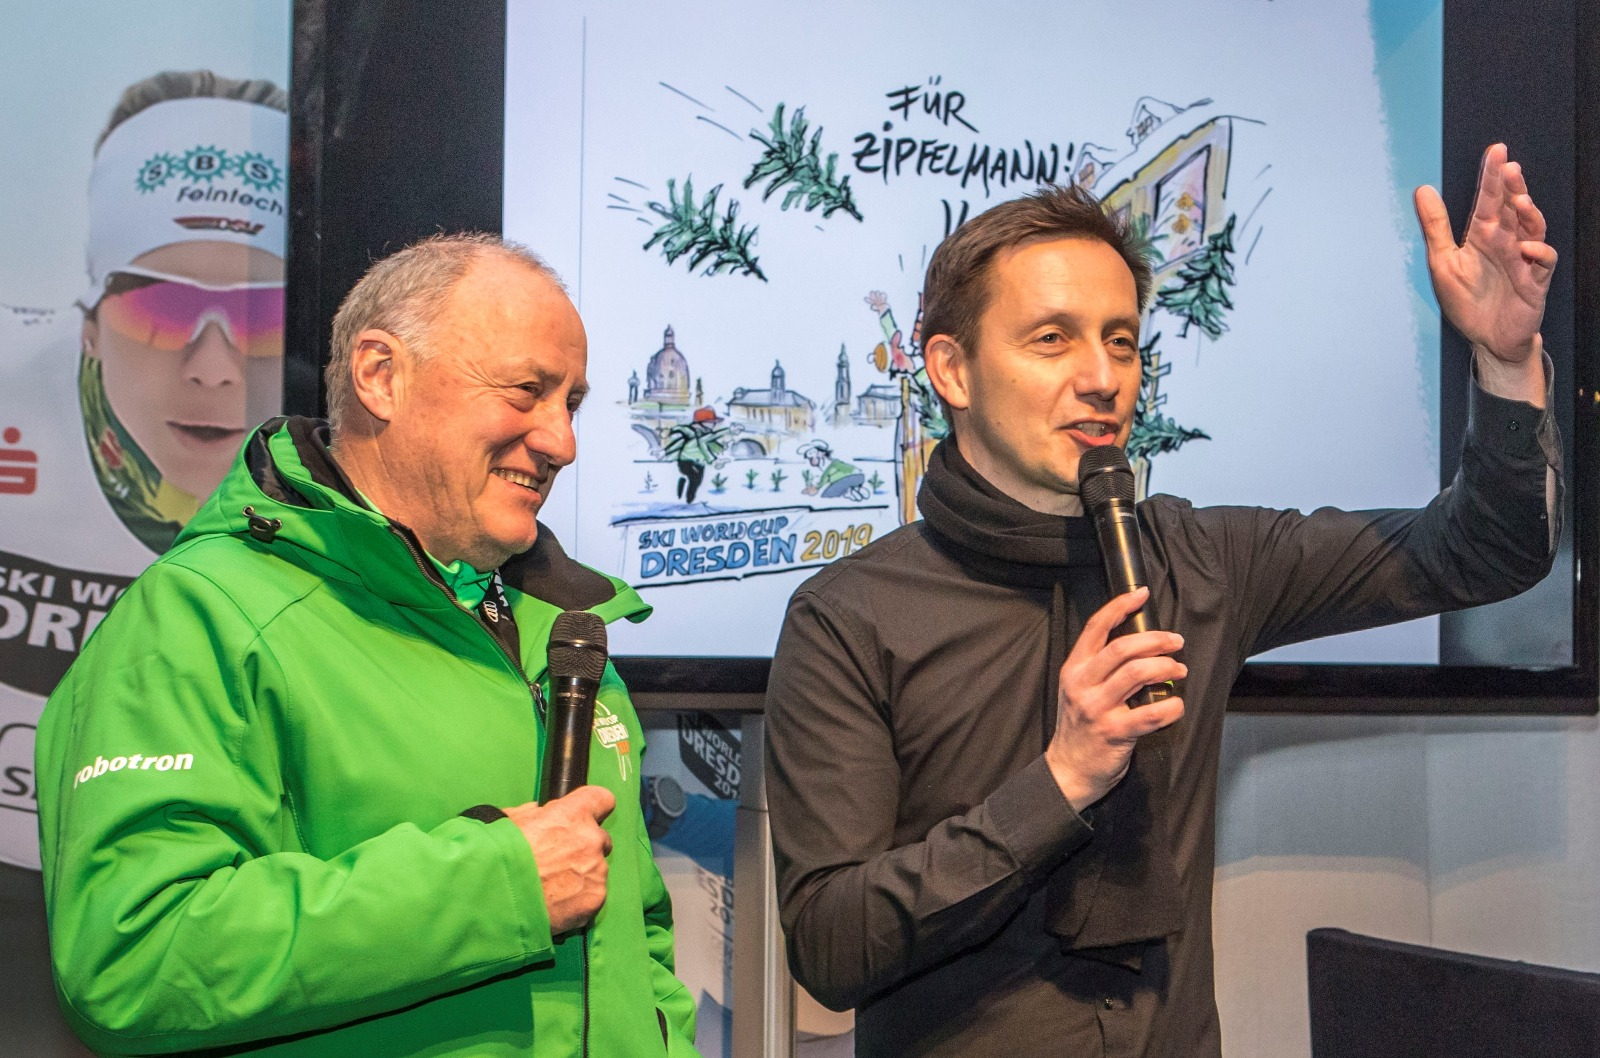 Dresden World Cup Chief of Competition Georg Zipfel (L) and Co-Director Torsten Püschel talk about the event.